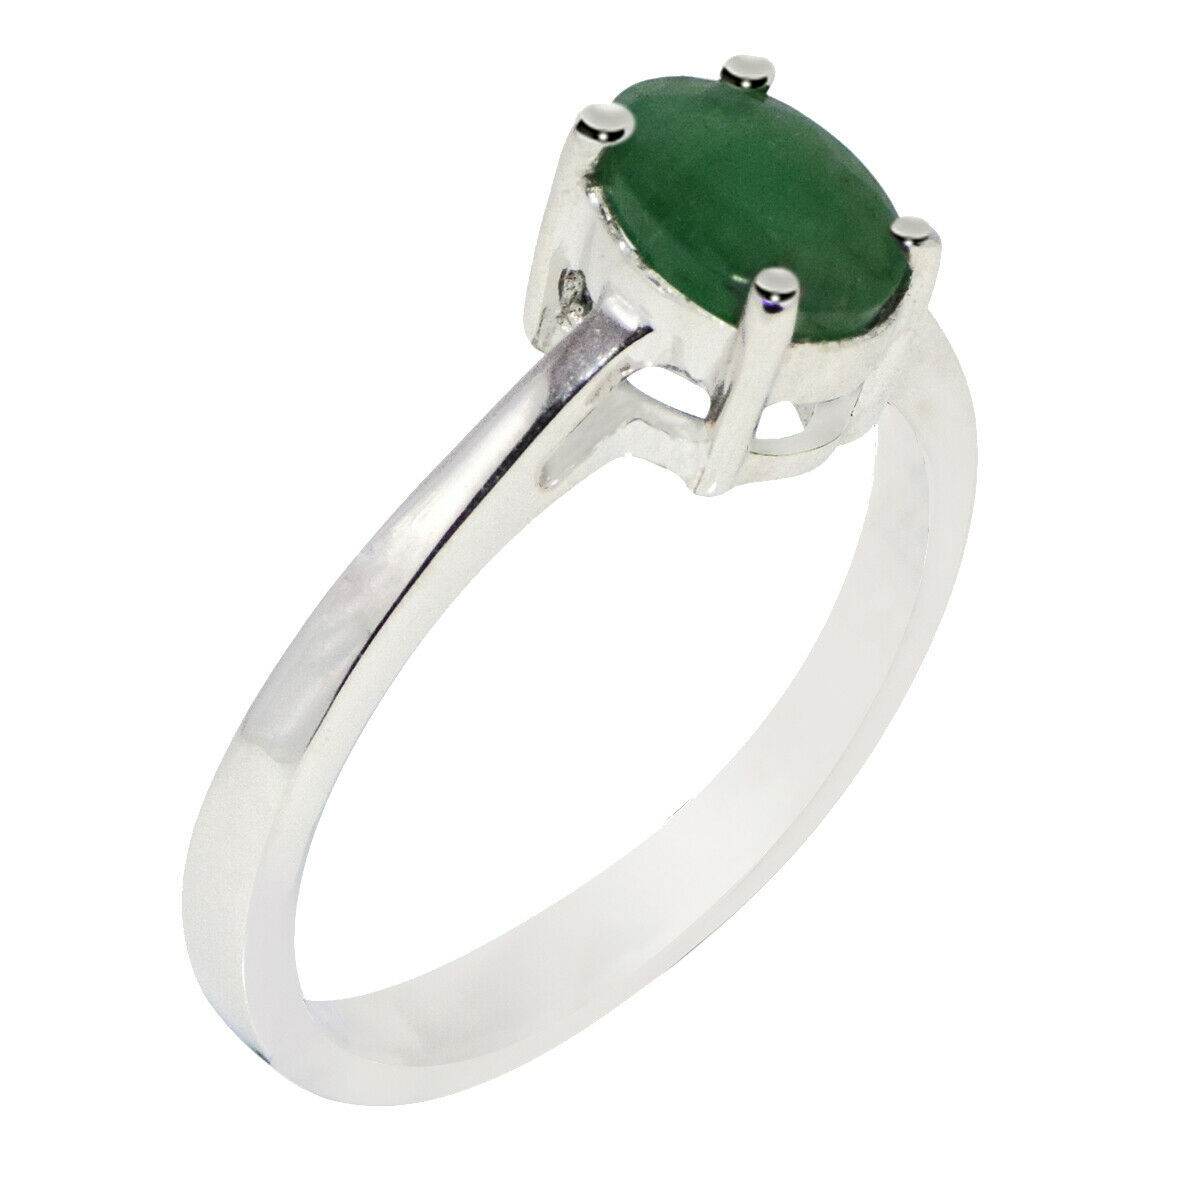 Primary image for 0.85 Ctw Emerald Oval Cut Gemstone 925 Fine Silver Solitaire Women Wedding Ring